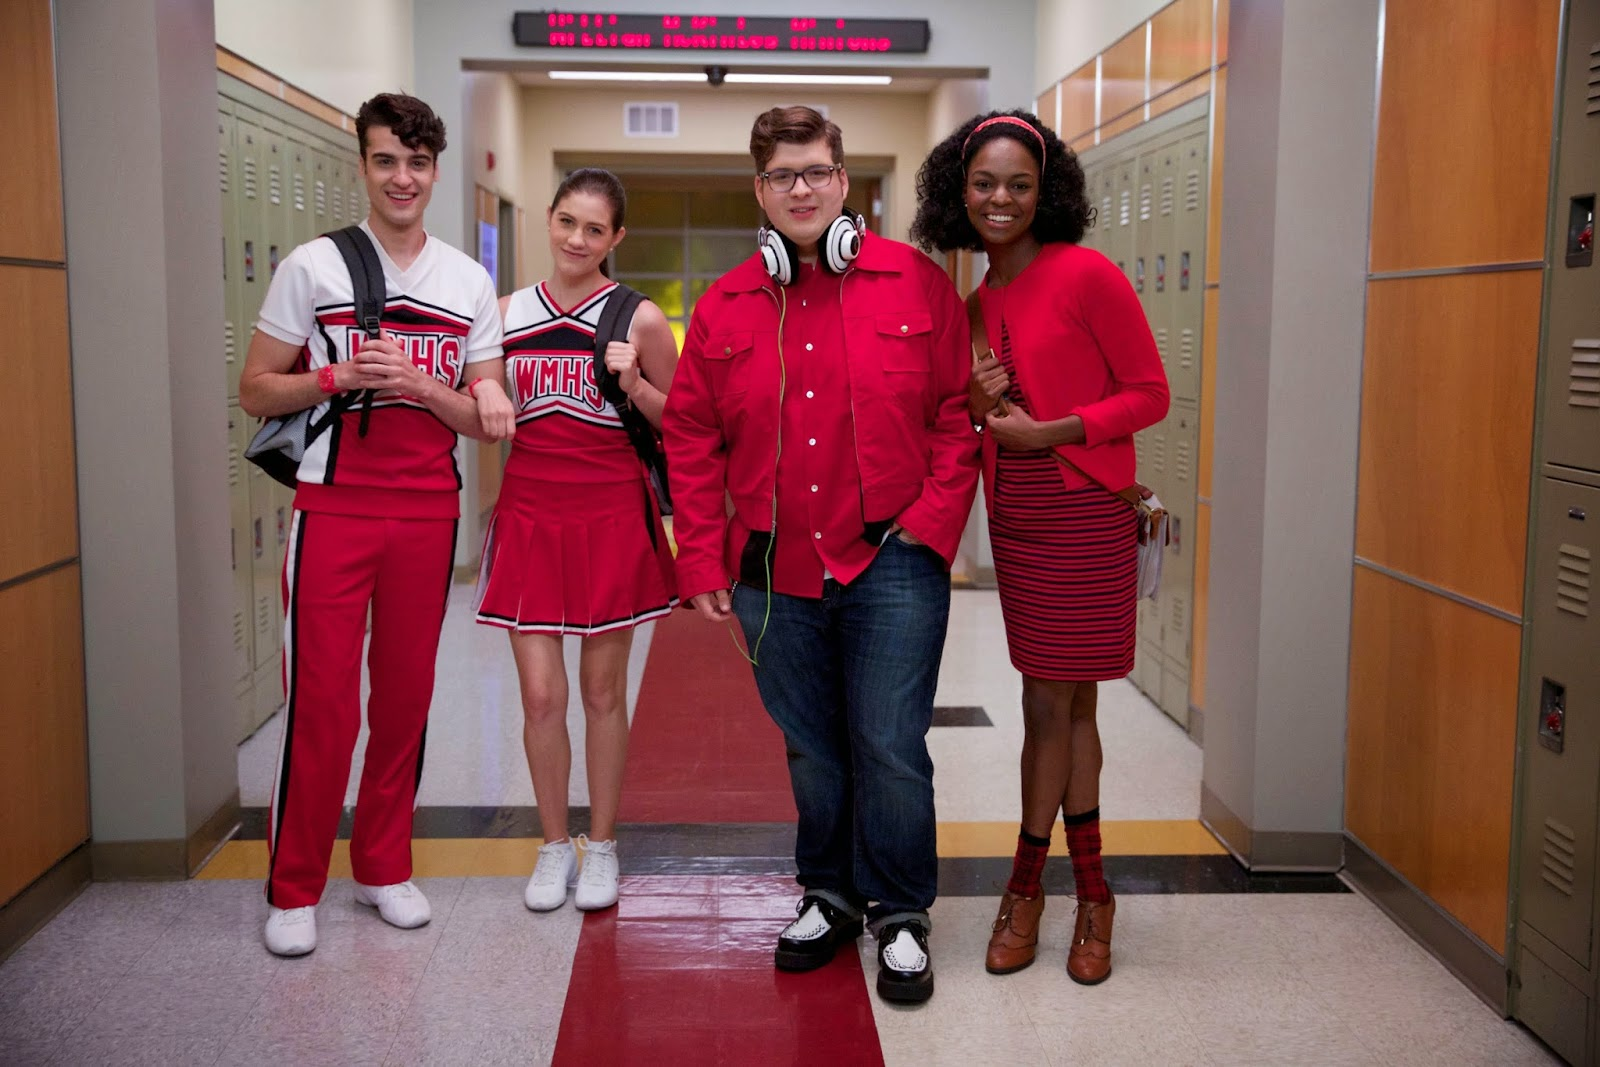 Glee S06E01-02. Loser Like Me-Homecoming